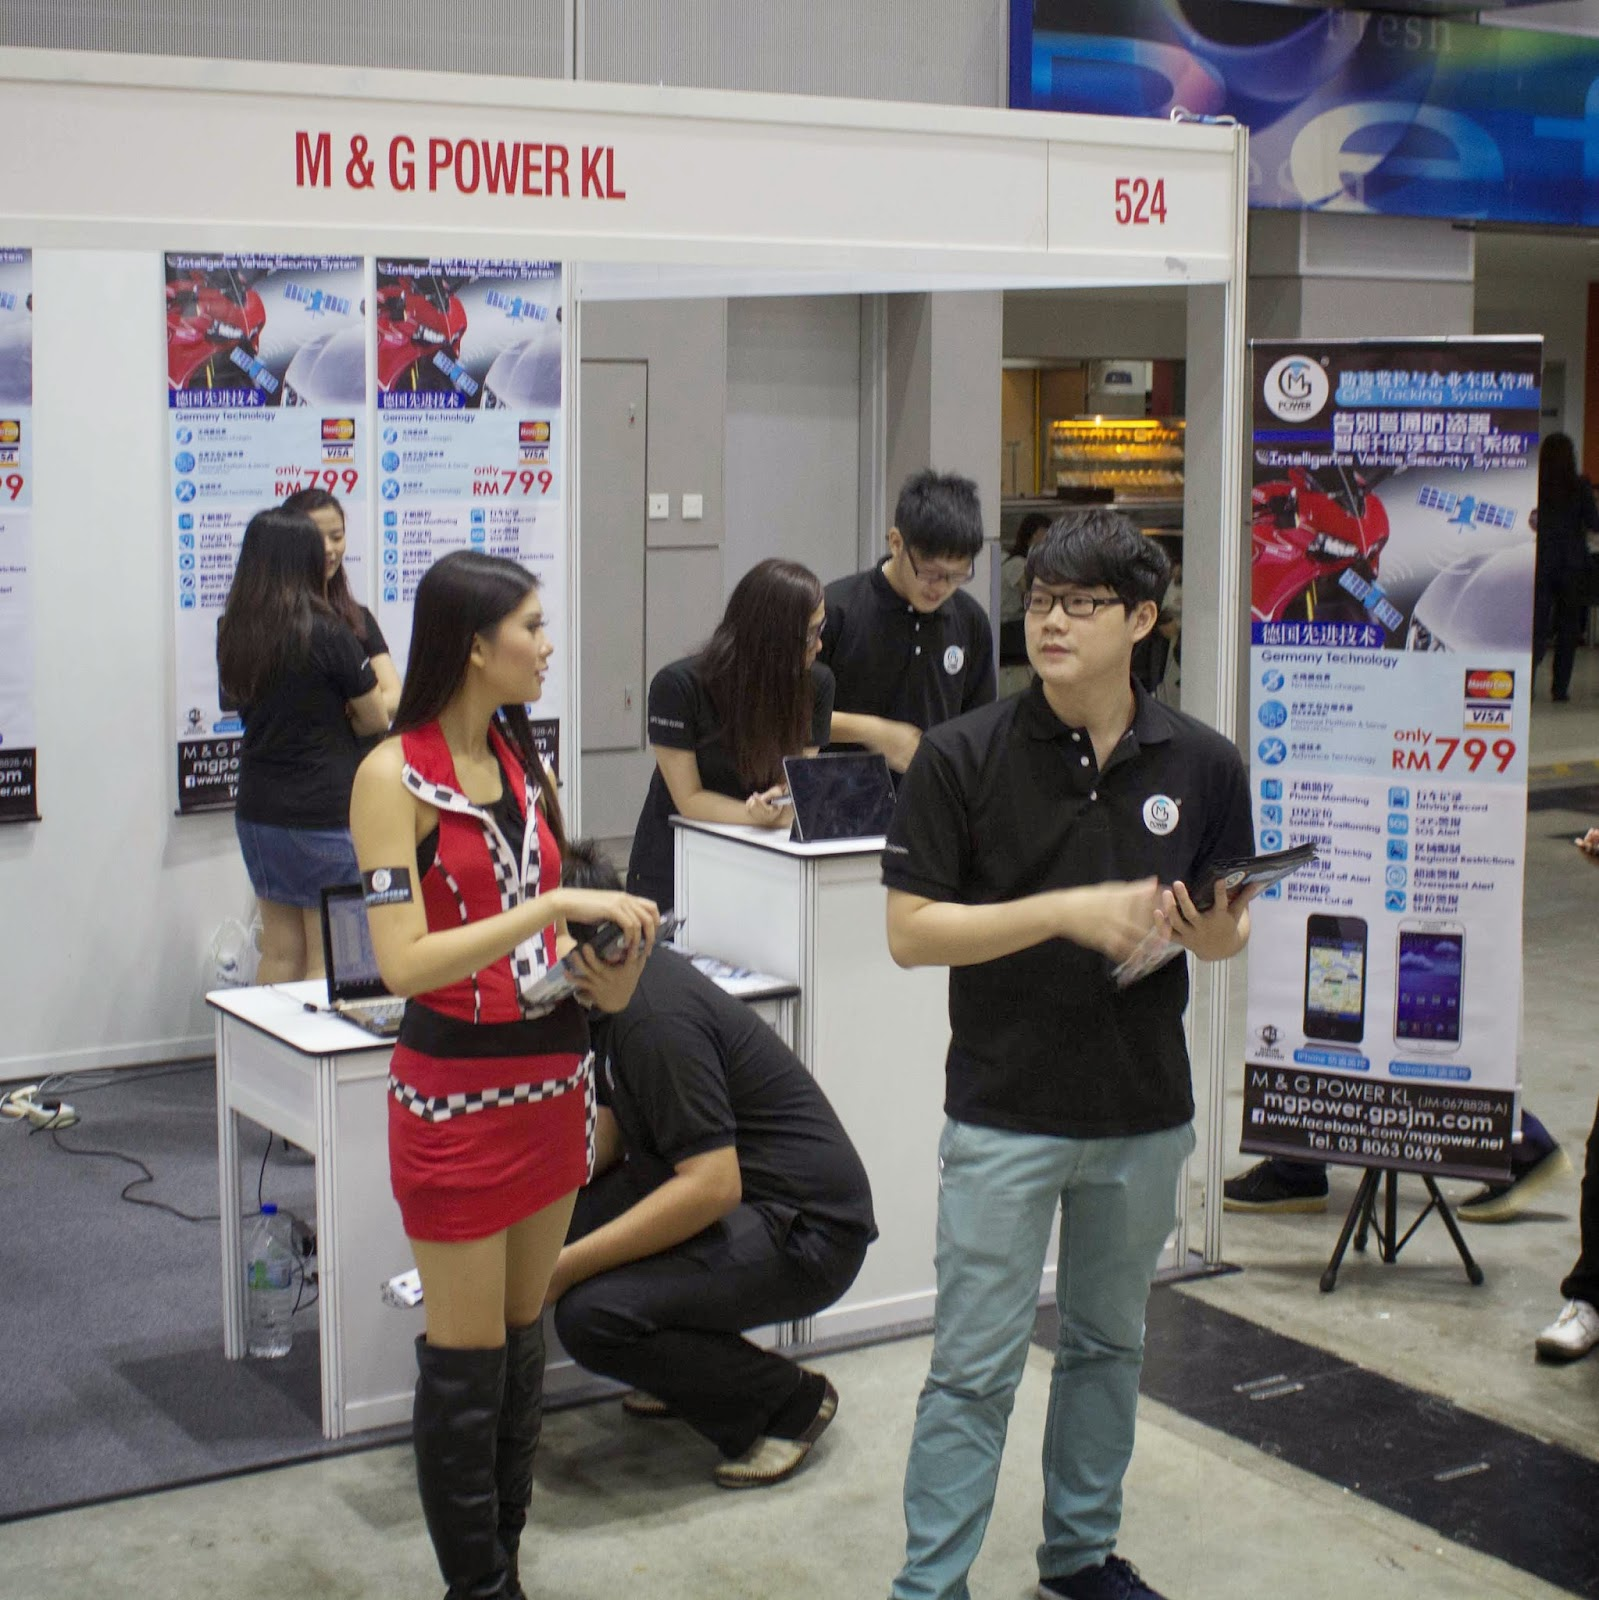 Coverage of PIKOM PC Fair 2014 @ Kuala Lumpur Convention Center 382